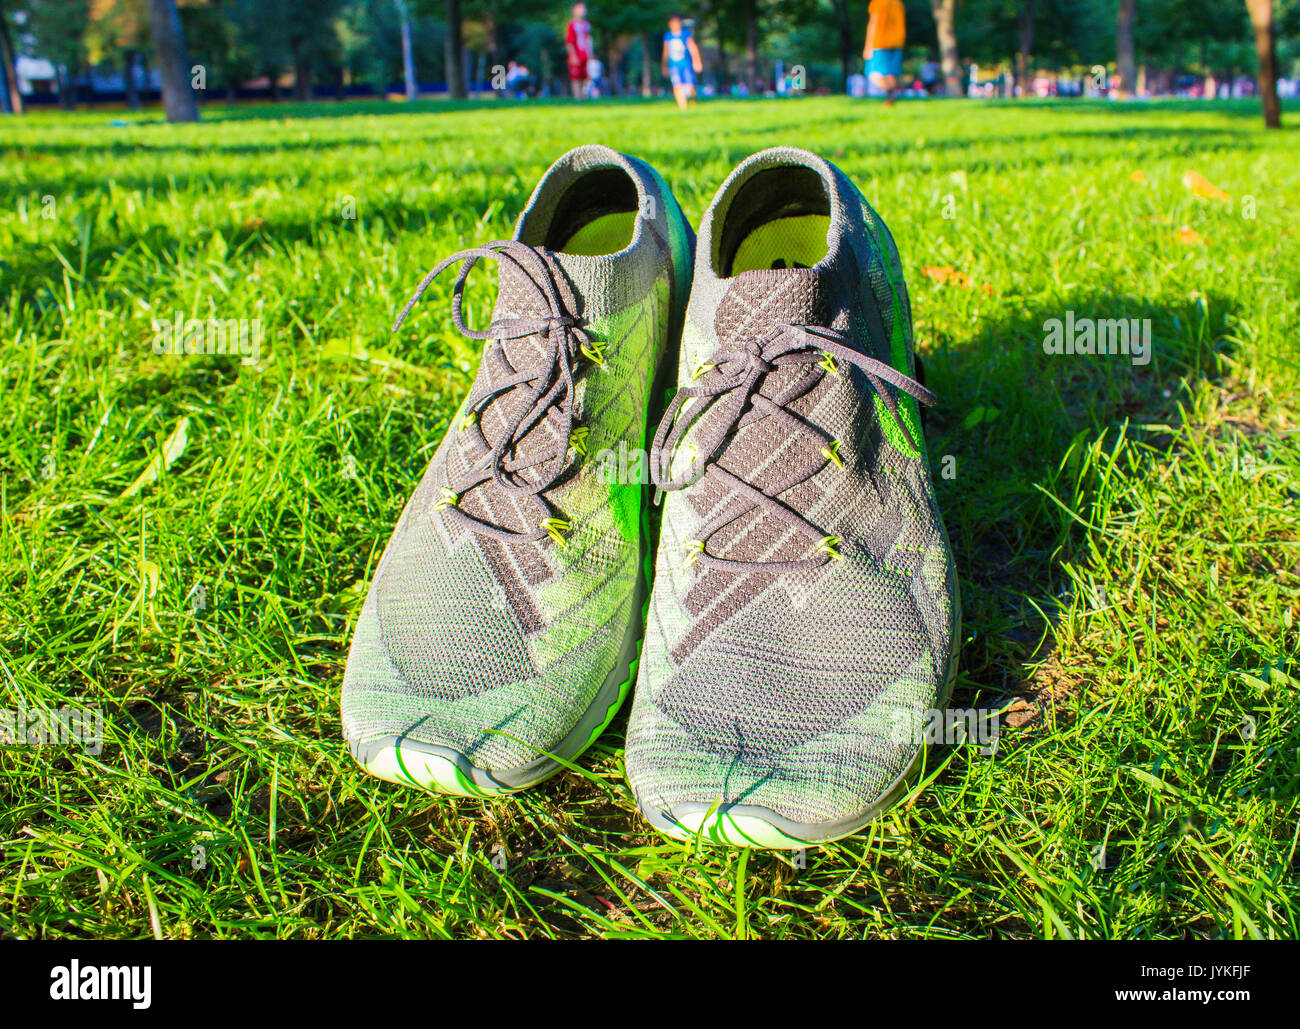 Dnipropetrovsk, Ukraine - August, 21 2016: New style nike shoes on green  grass - illustrative editorial